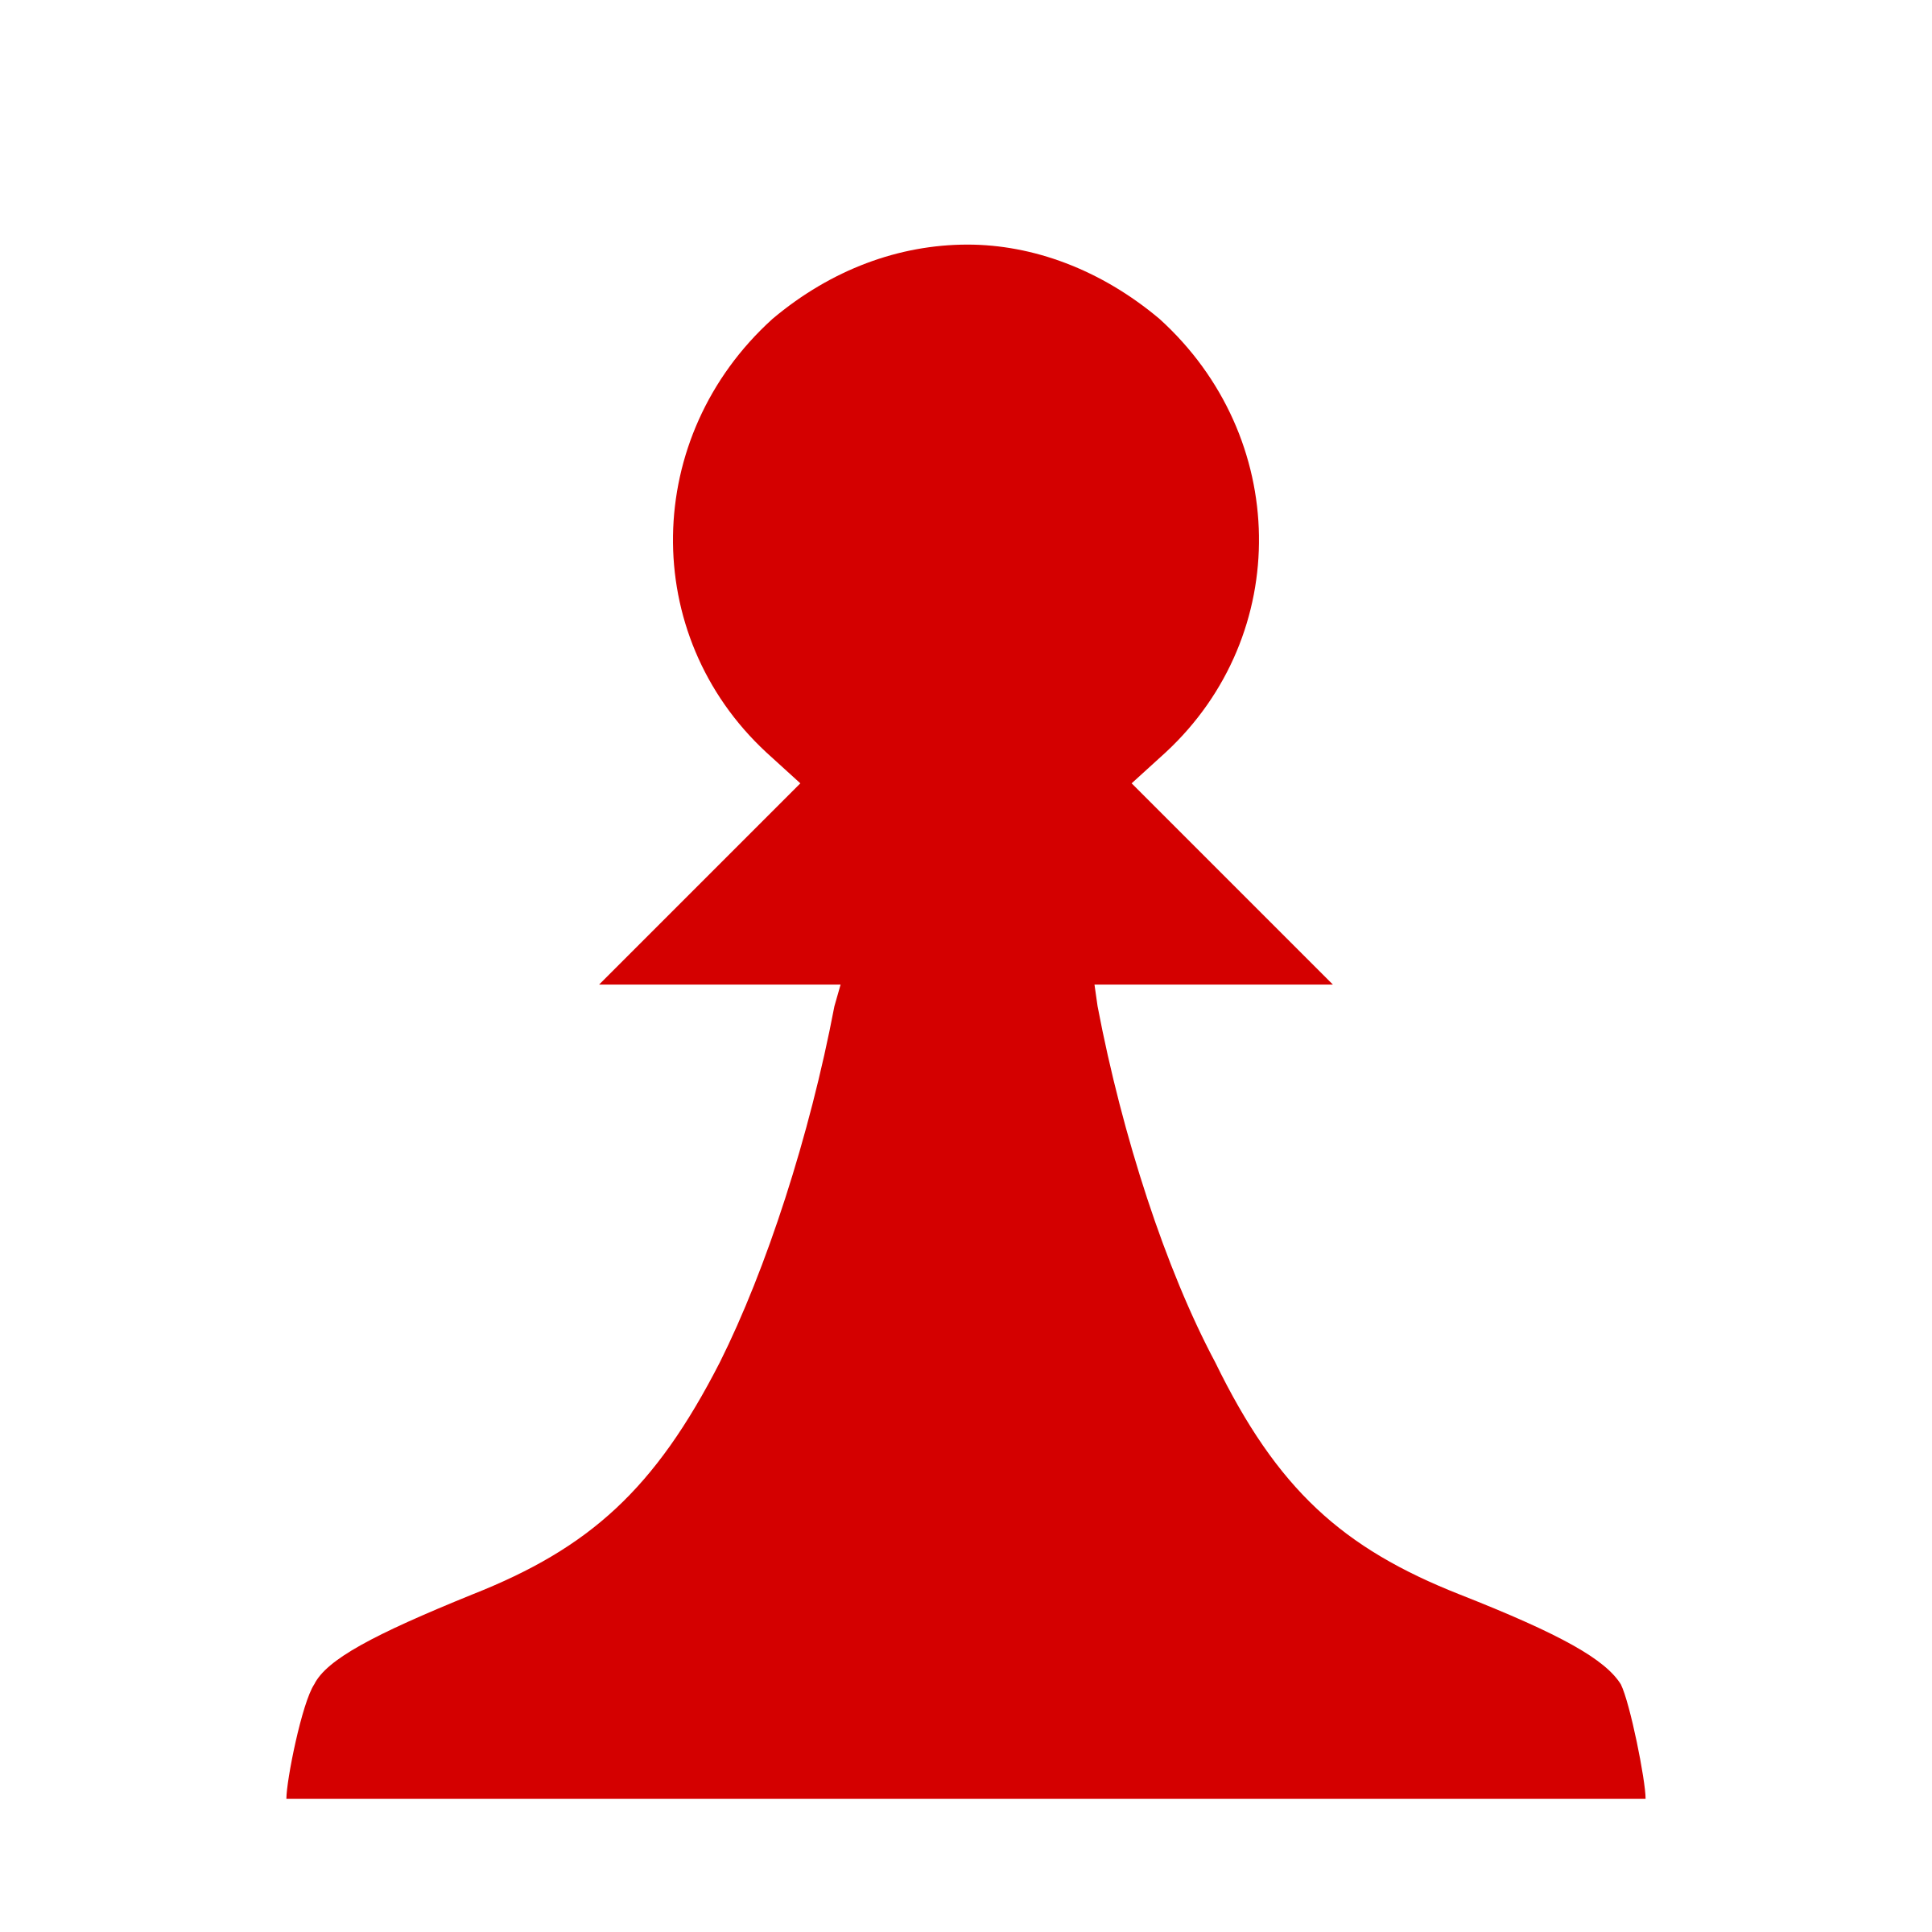 clipart chess piece silhouette red pawn pe243n rojo